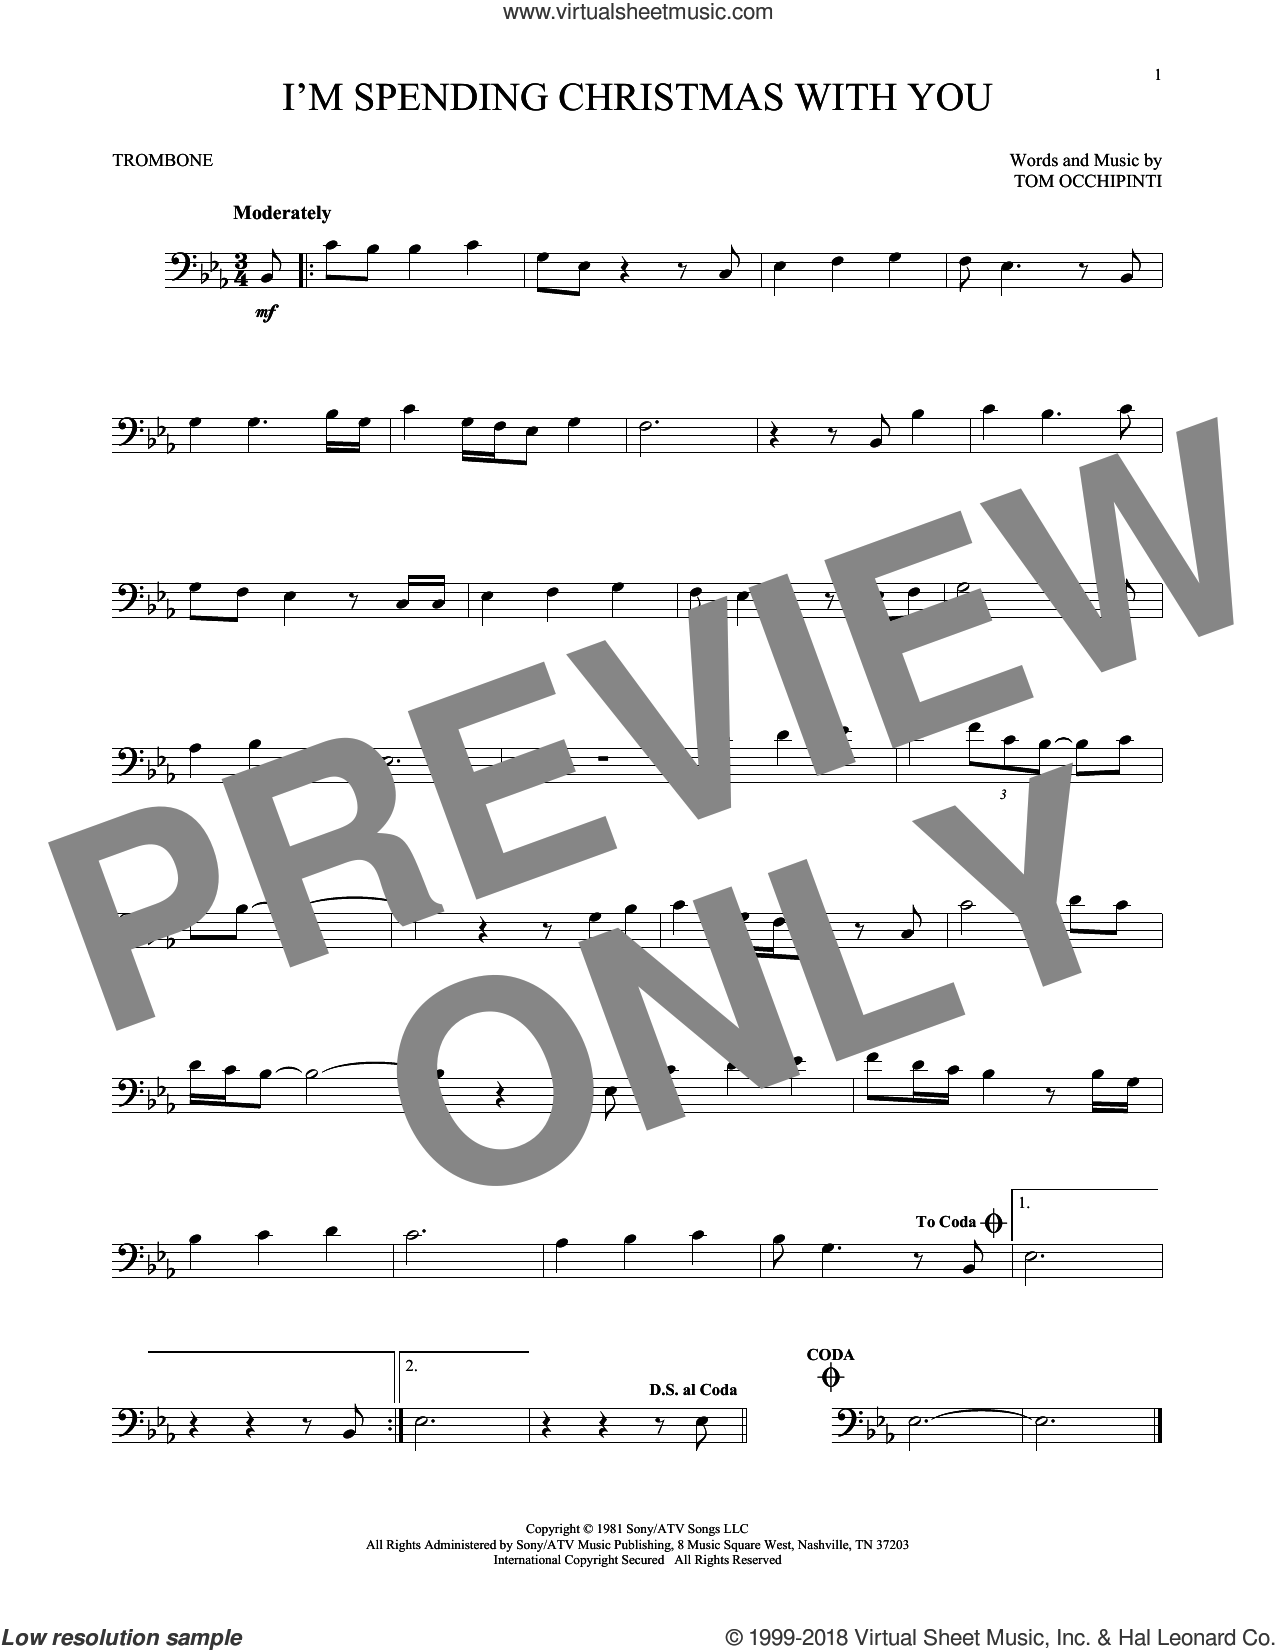 I'm Spending Christmas With You sheet music for trombone solo by Tom Occhipinti, intermediate skill level